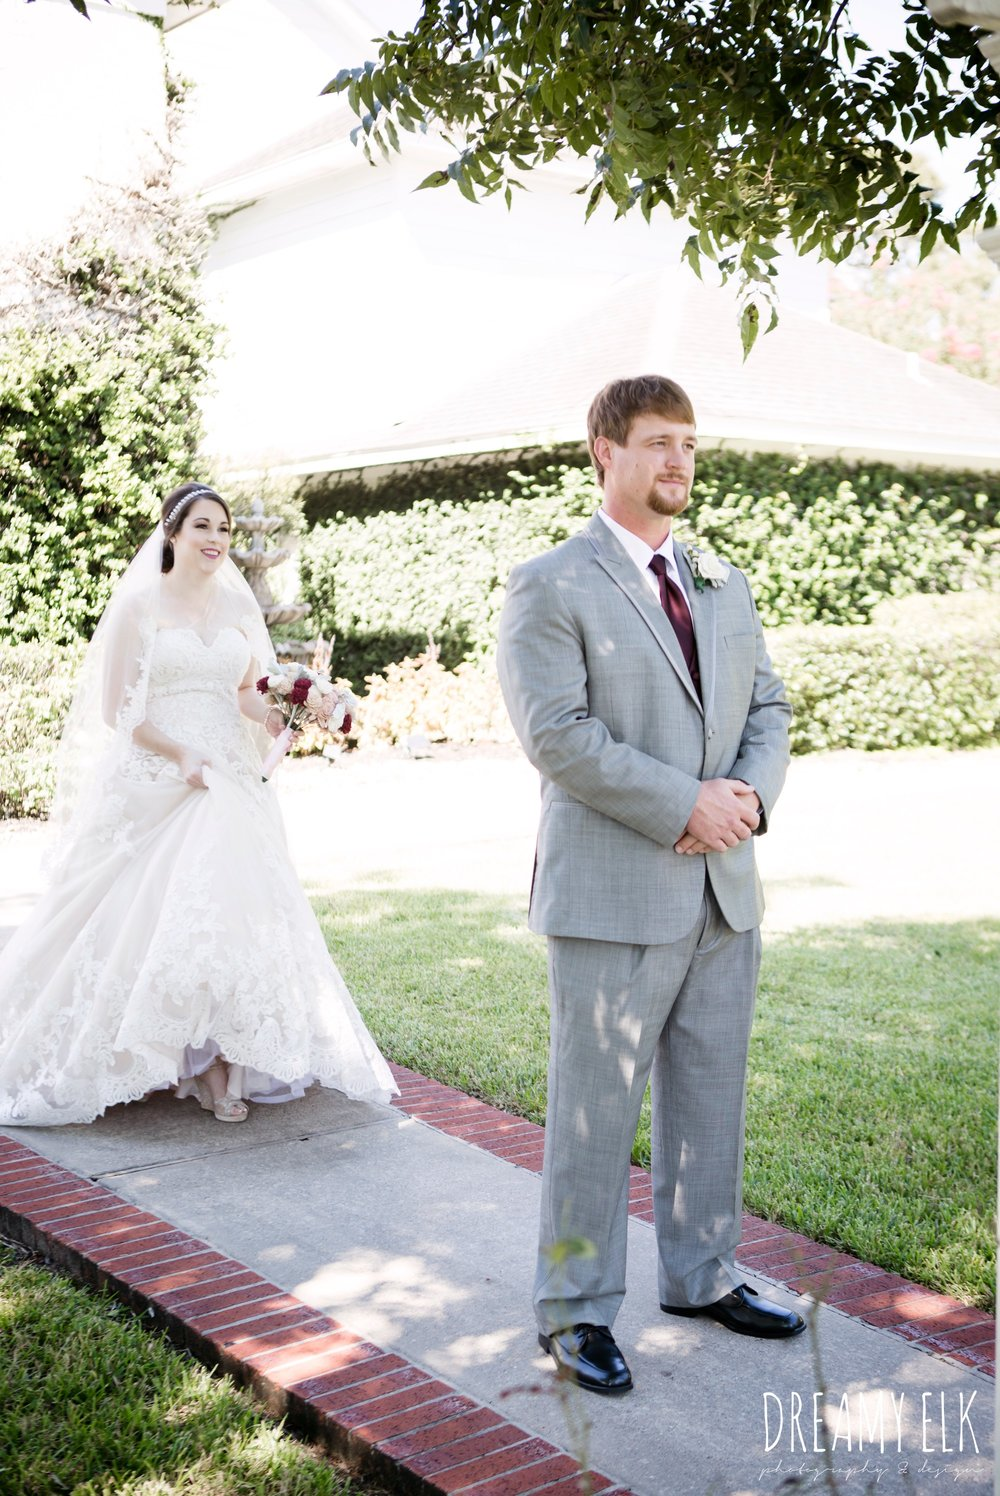 first look, bride, sweetheart lace ballgown wedding dress, oyester underlay, lace trimmed veil, rhinestone headpiece, groom, men's wearhouse gray tux with maroon vest and tie, september wedding photo, ashelynn manor, magnolia, texas, austin texas wedding photographer {dreamy elk photography and design}